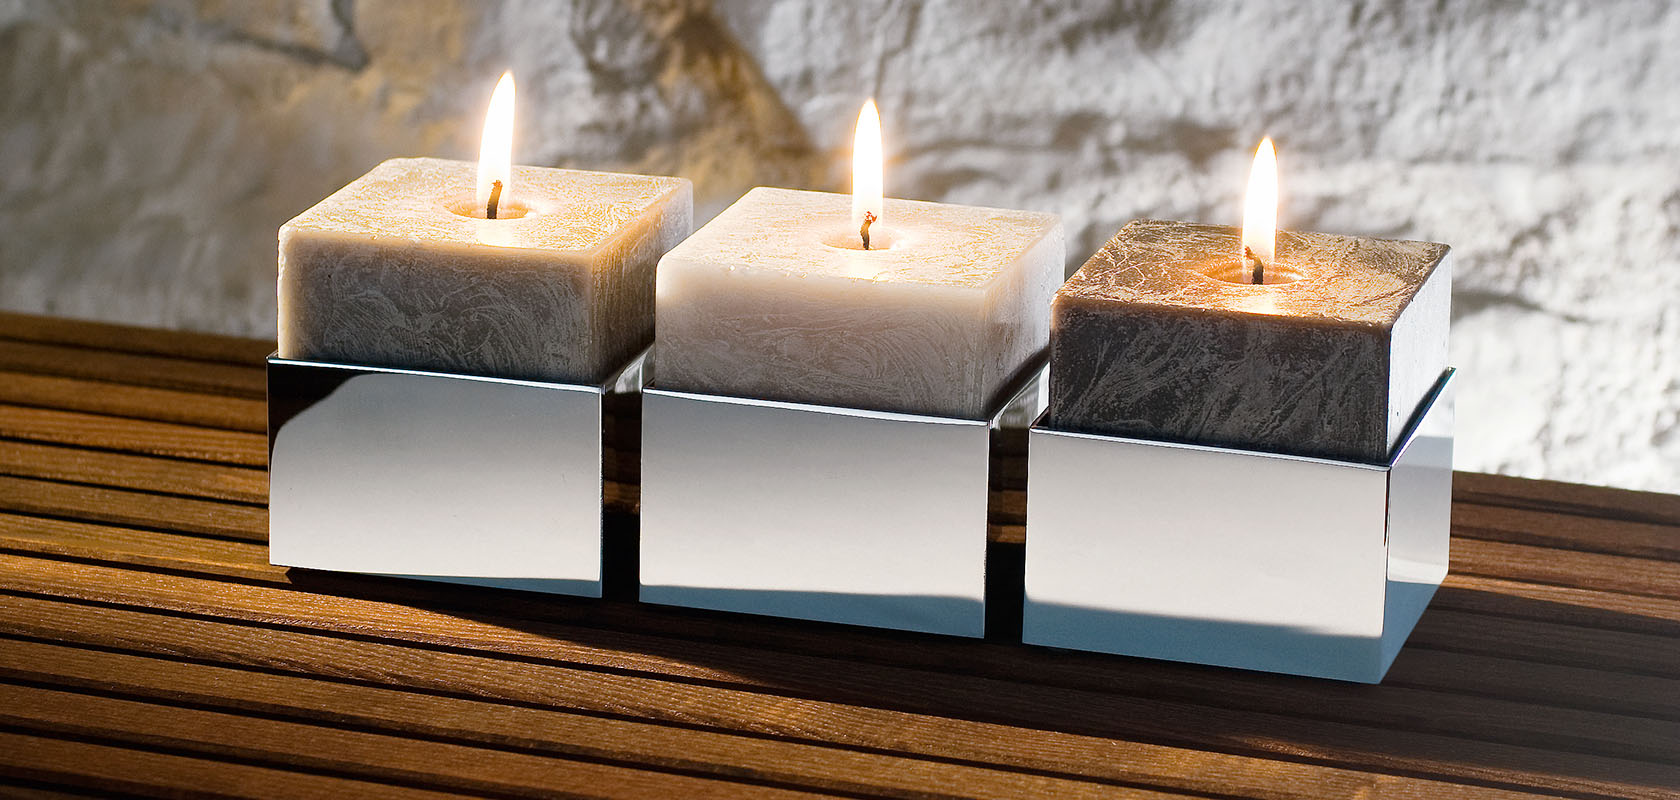 decor-walther_candles